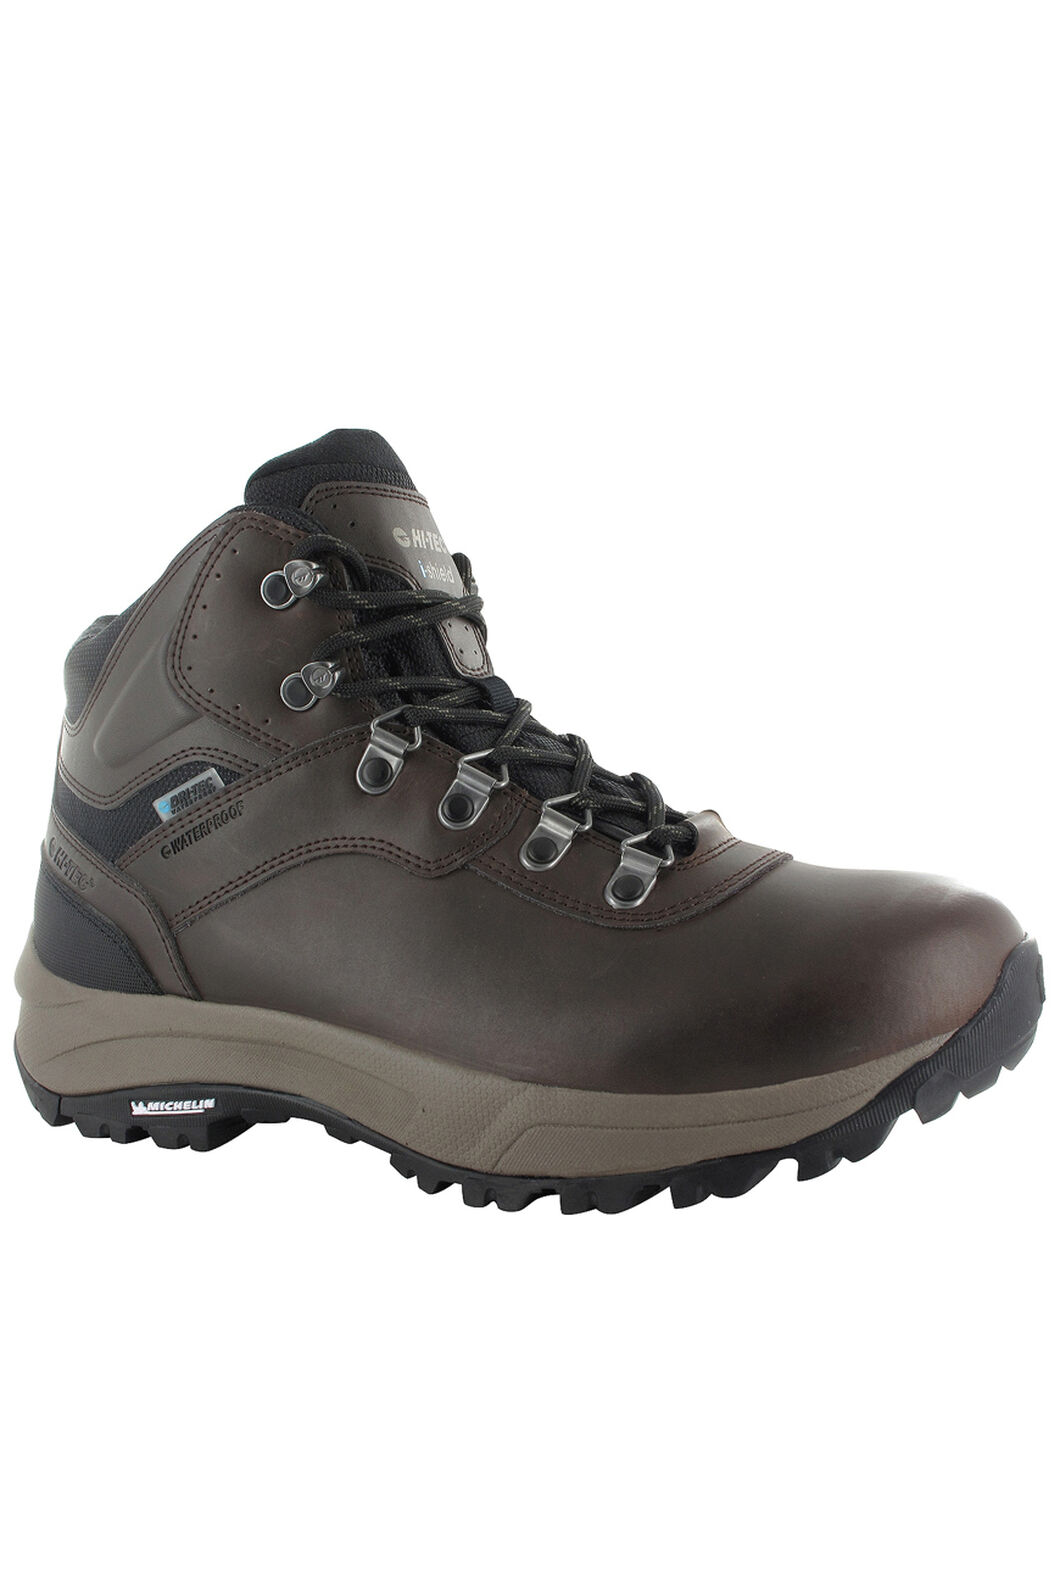 Hi-Tec Altitude VI I WP Boots - Men's, Dark Chocolate, hi-res